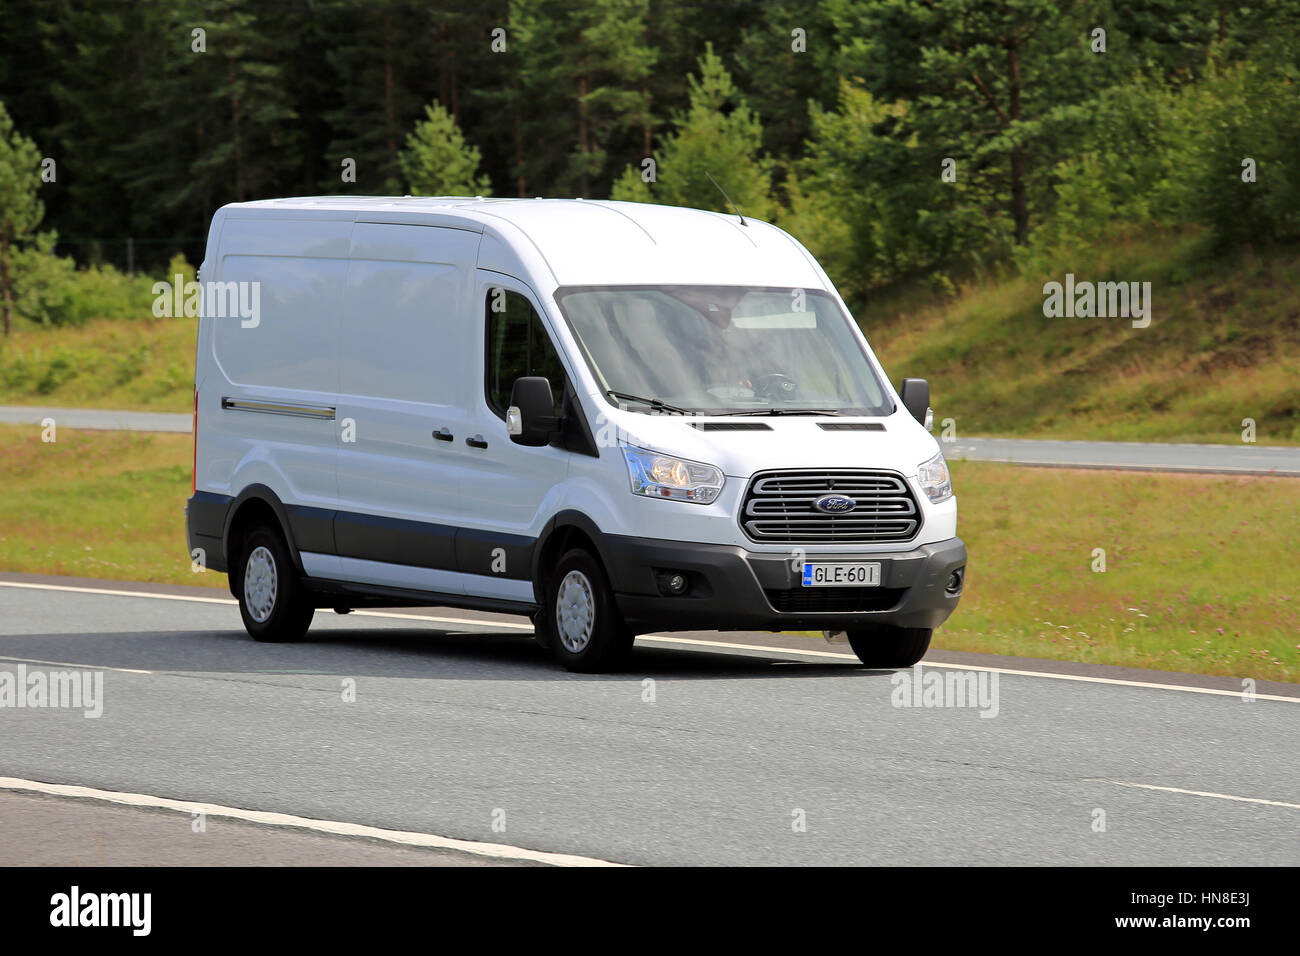 Paimio finland july 8 2017 white ford transit van moves along motorway